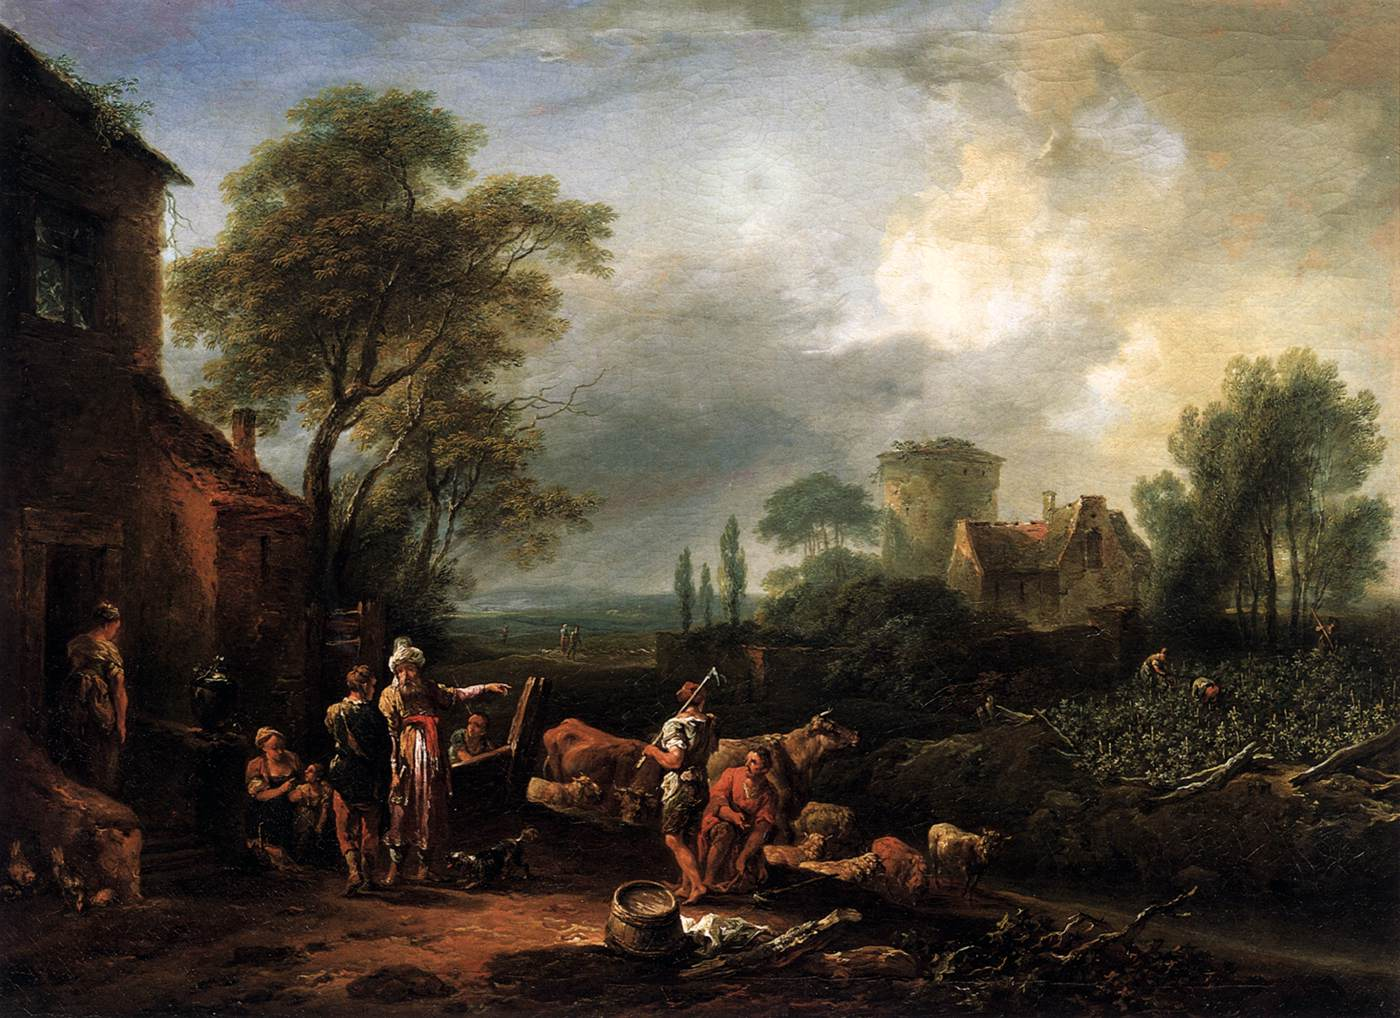 Parable of the Workers in the Vineyard Johann Christian Brand painted 1769